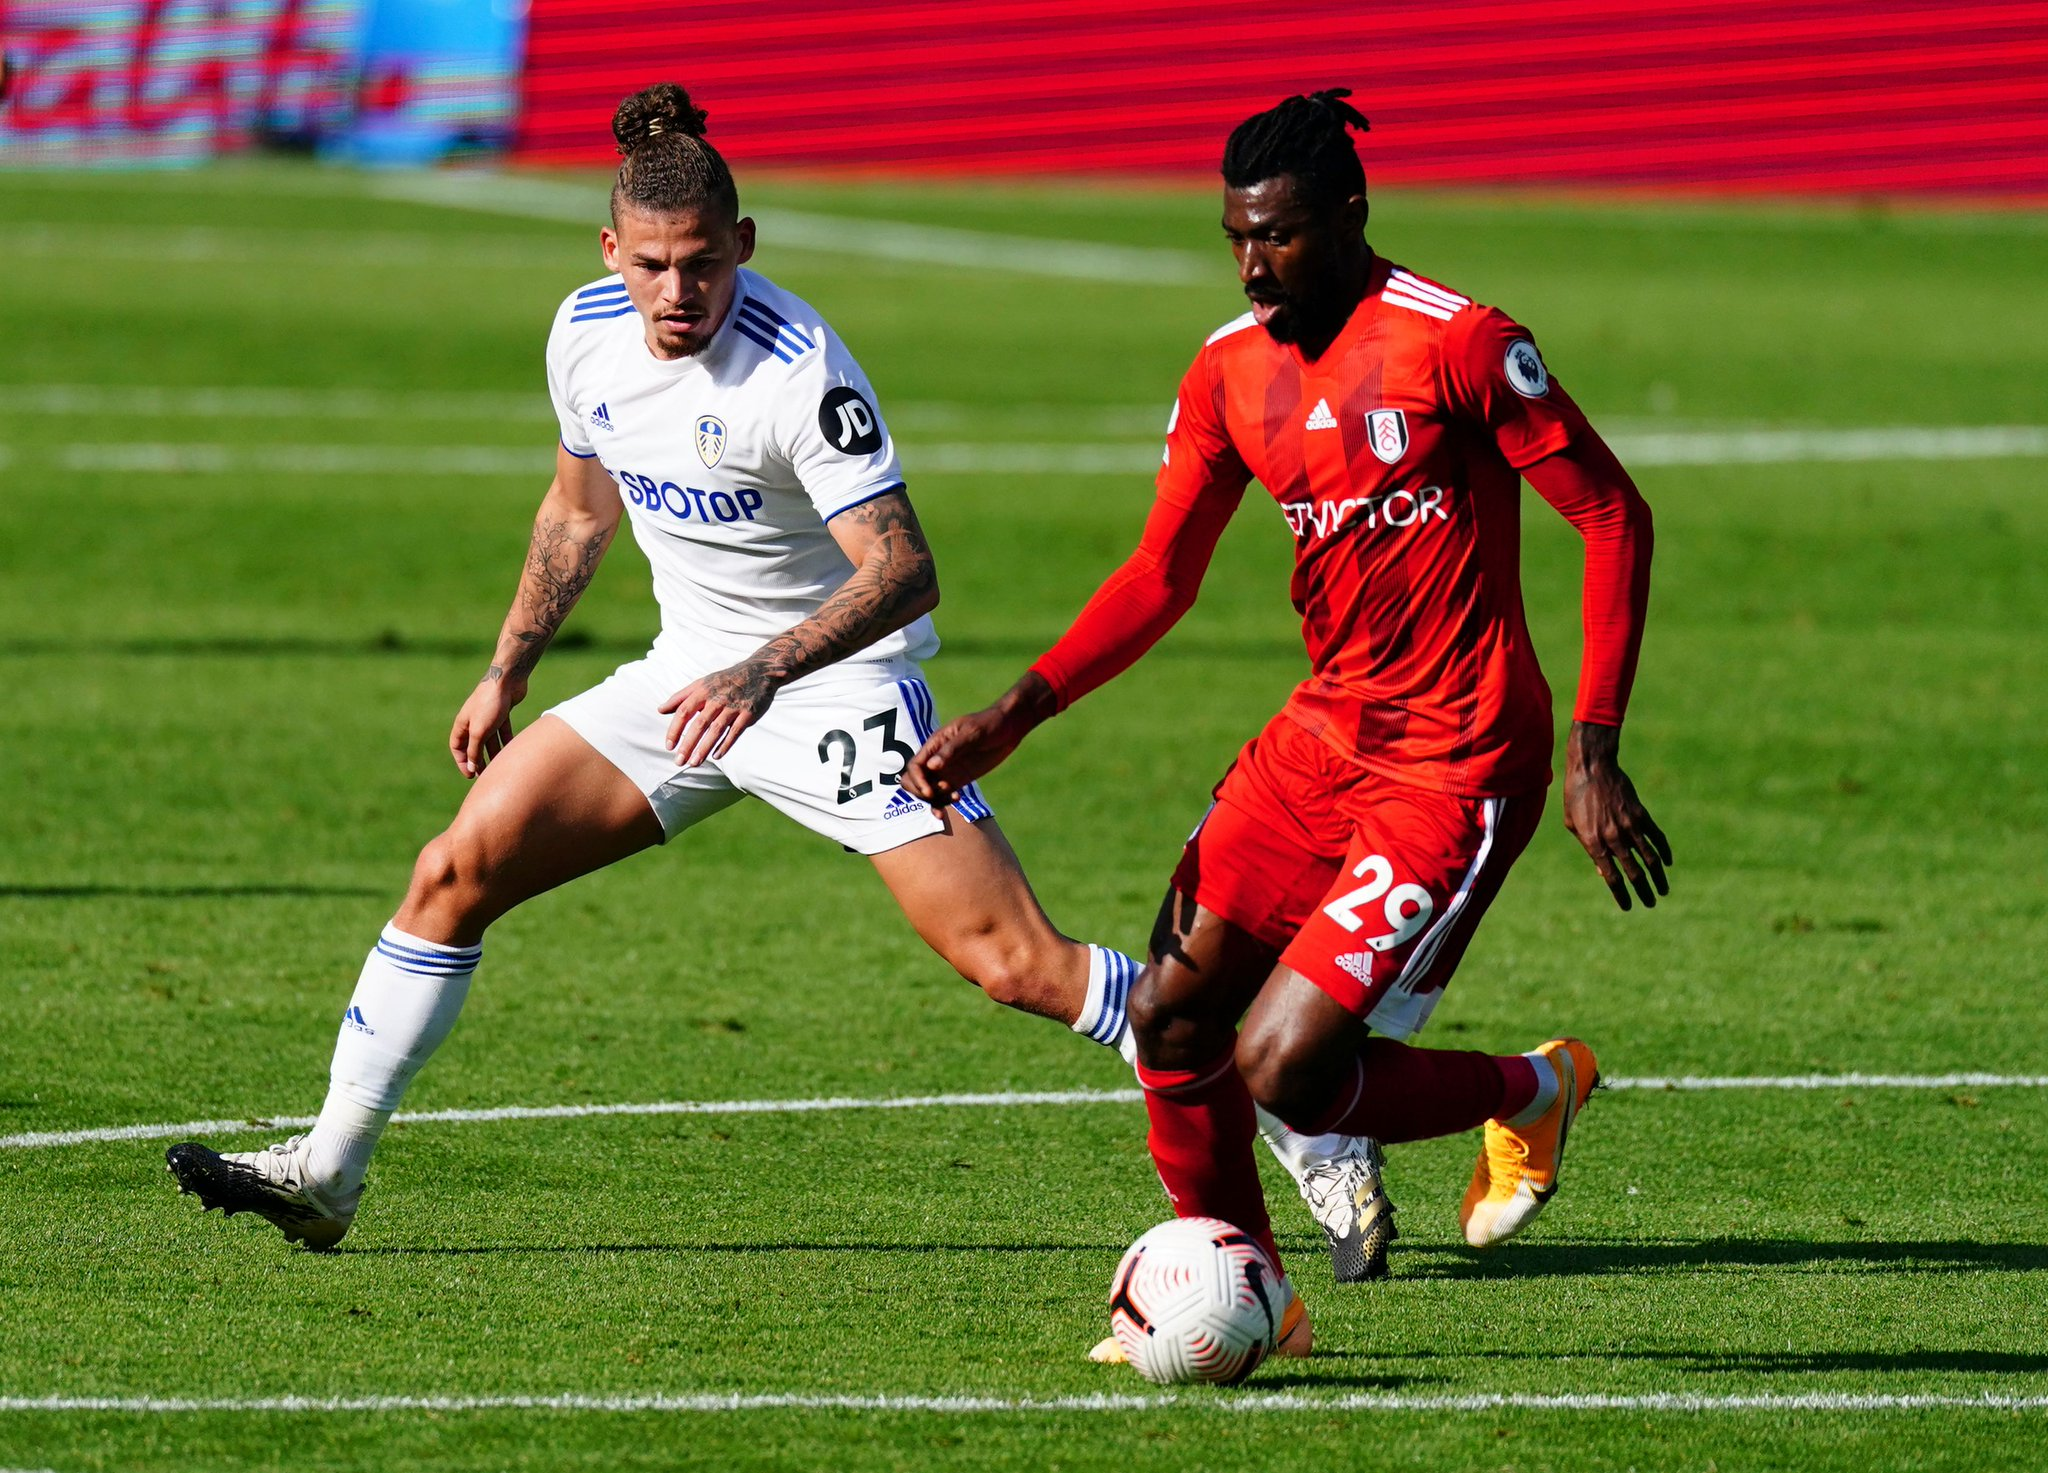 Fulham Football Club On Twitter 46 It S Go Time For The Second Half Keep Battling Lads 2 1 Leeful